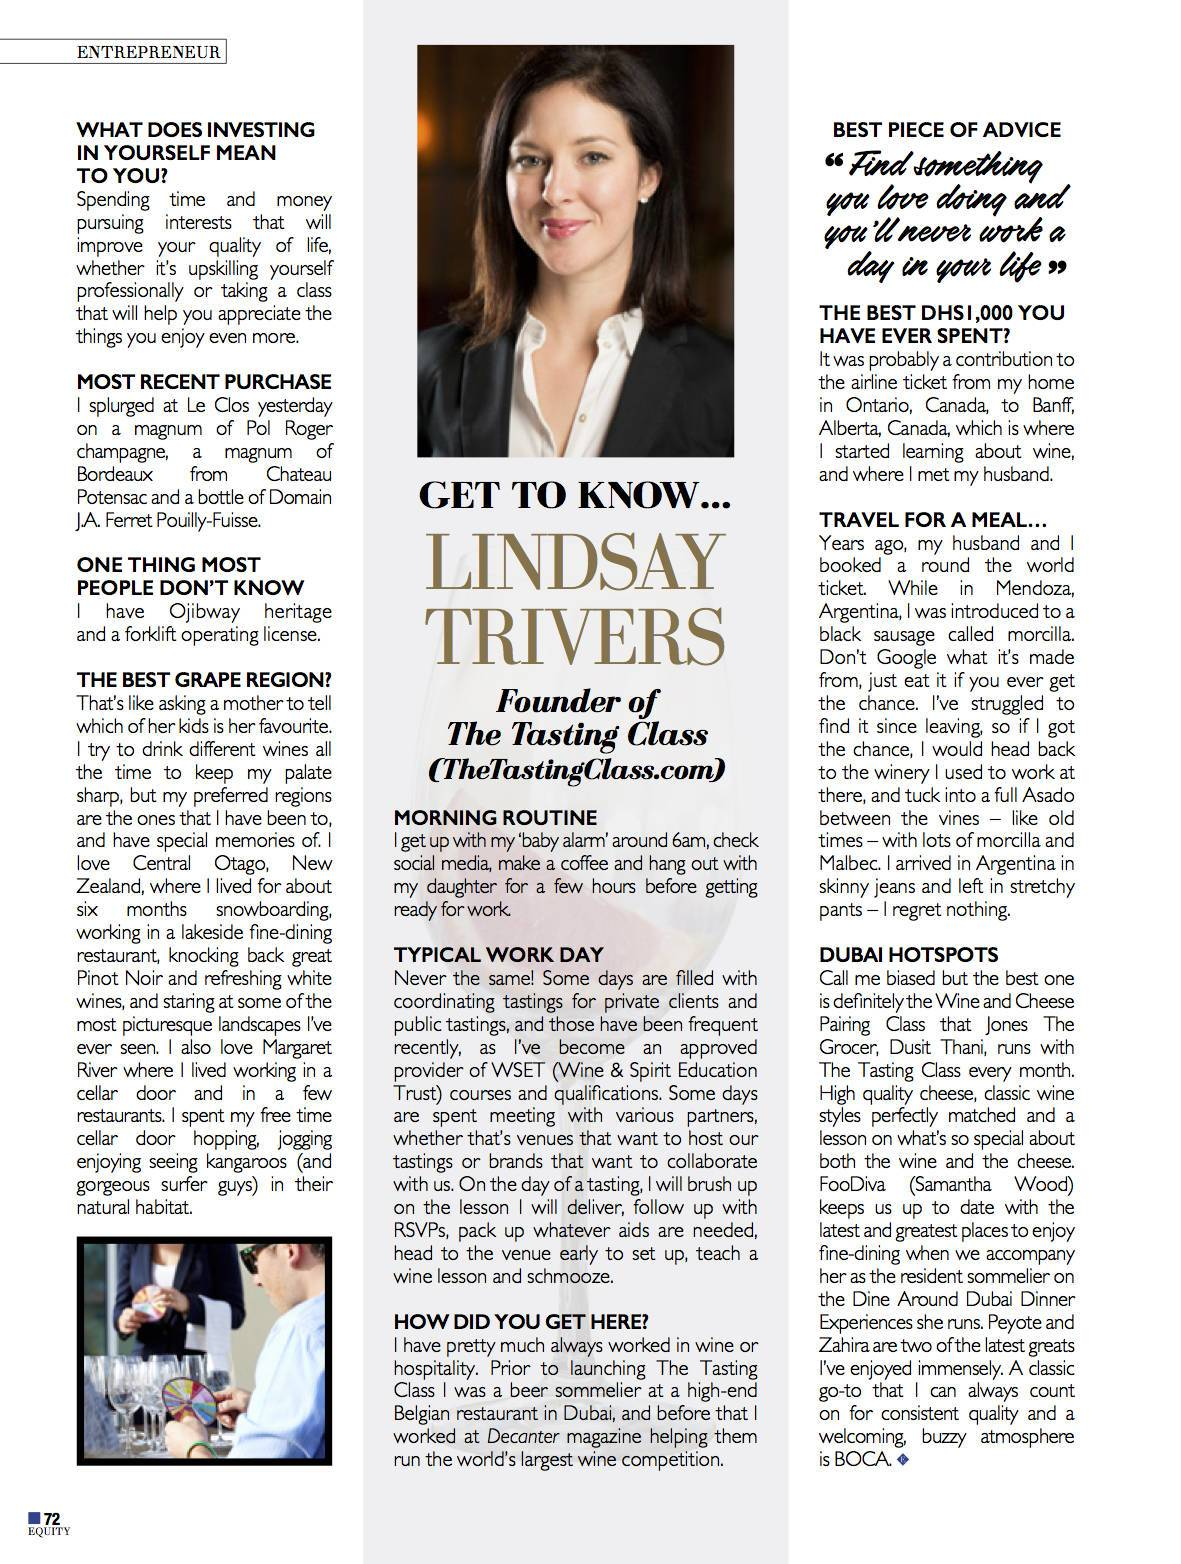 Get to Know Lindsay Trivers From The Tasting Class